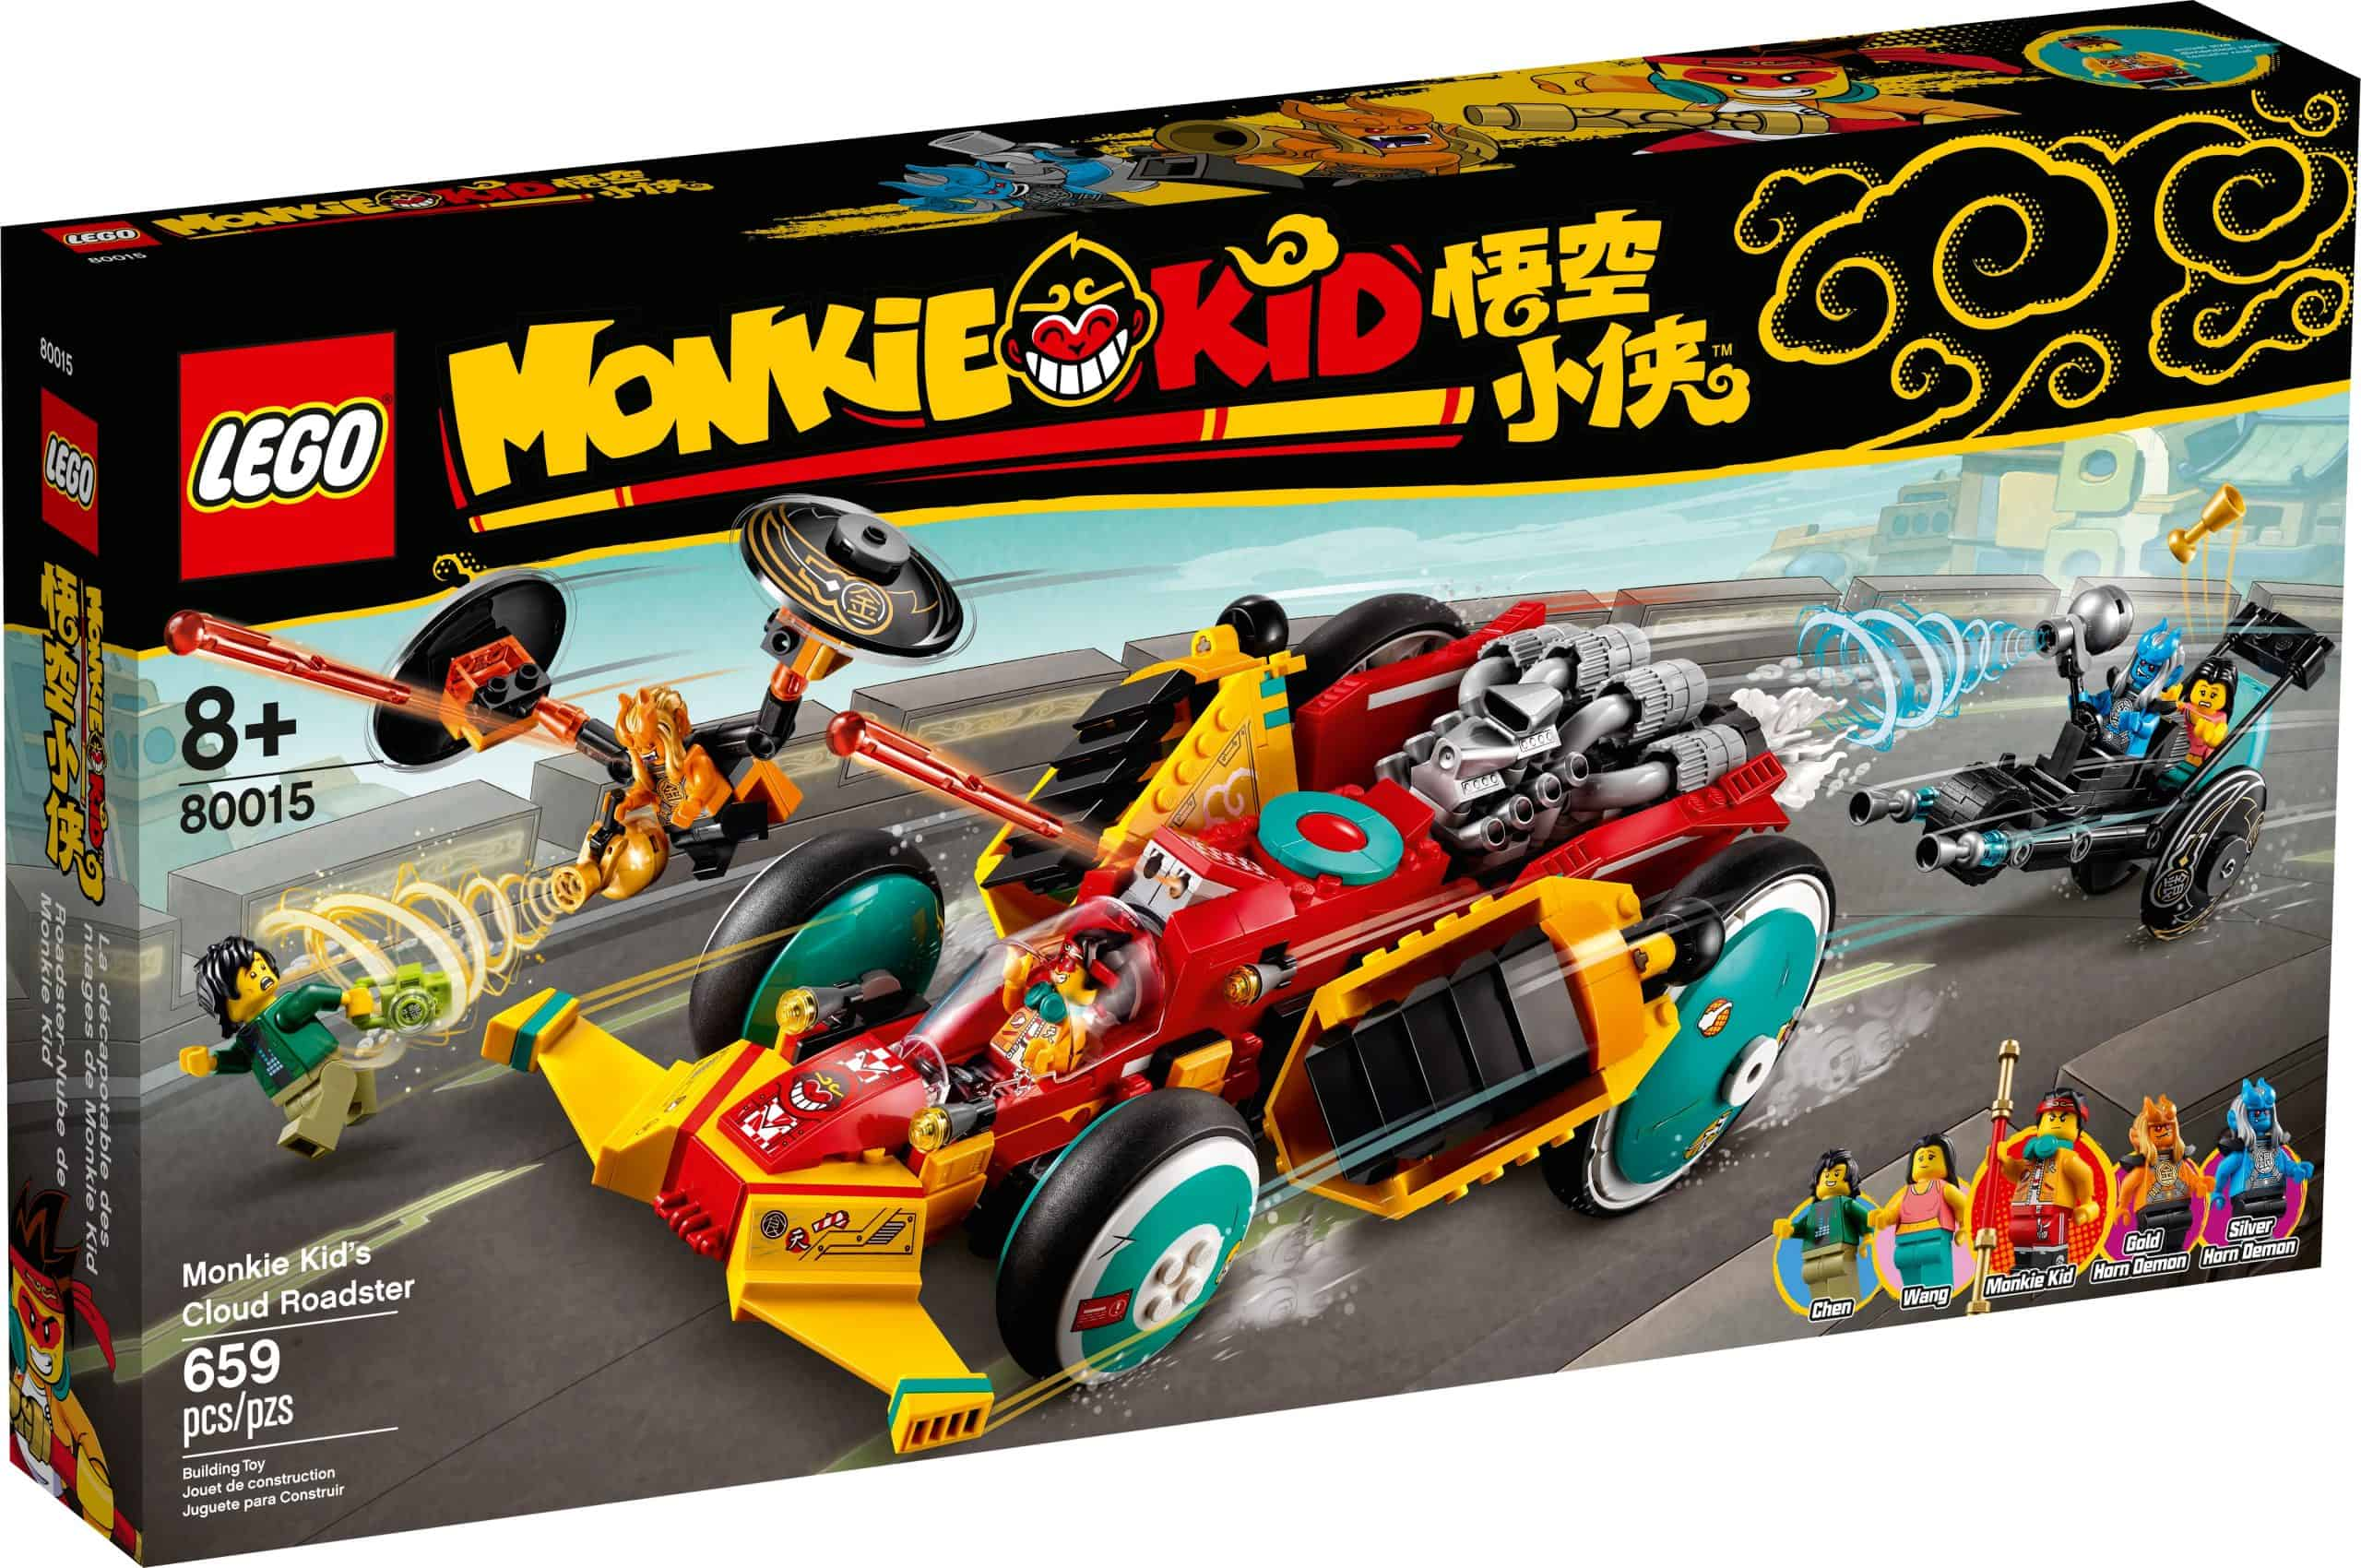 lego 80015 monkie kids molnroadster scaled